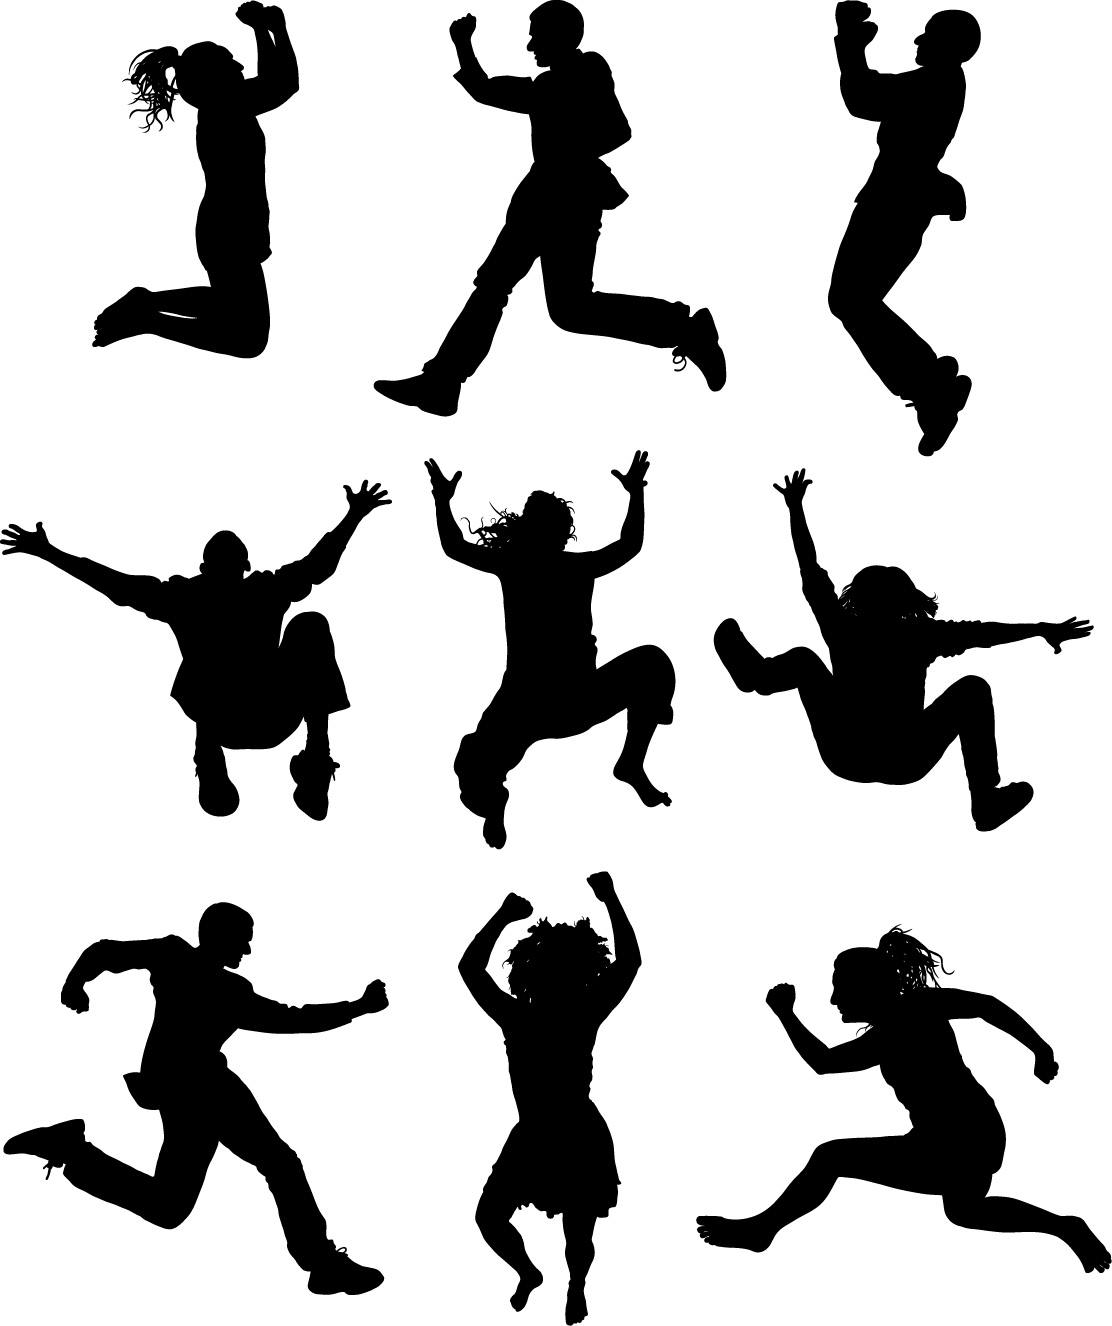 Dance Clip Art Black And White | Clipart Panda - Free Clipart Images